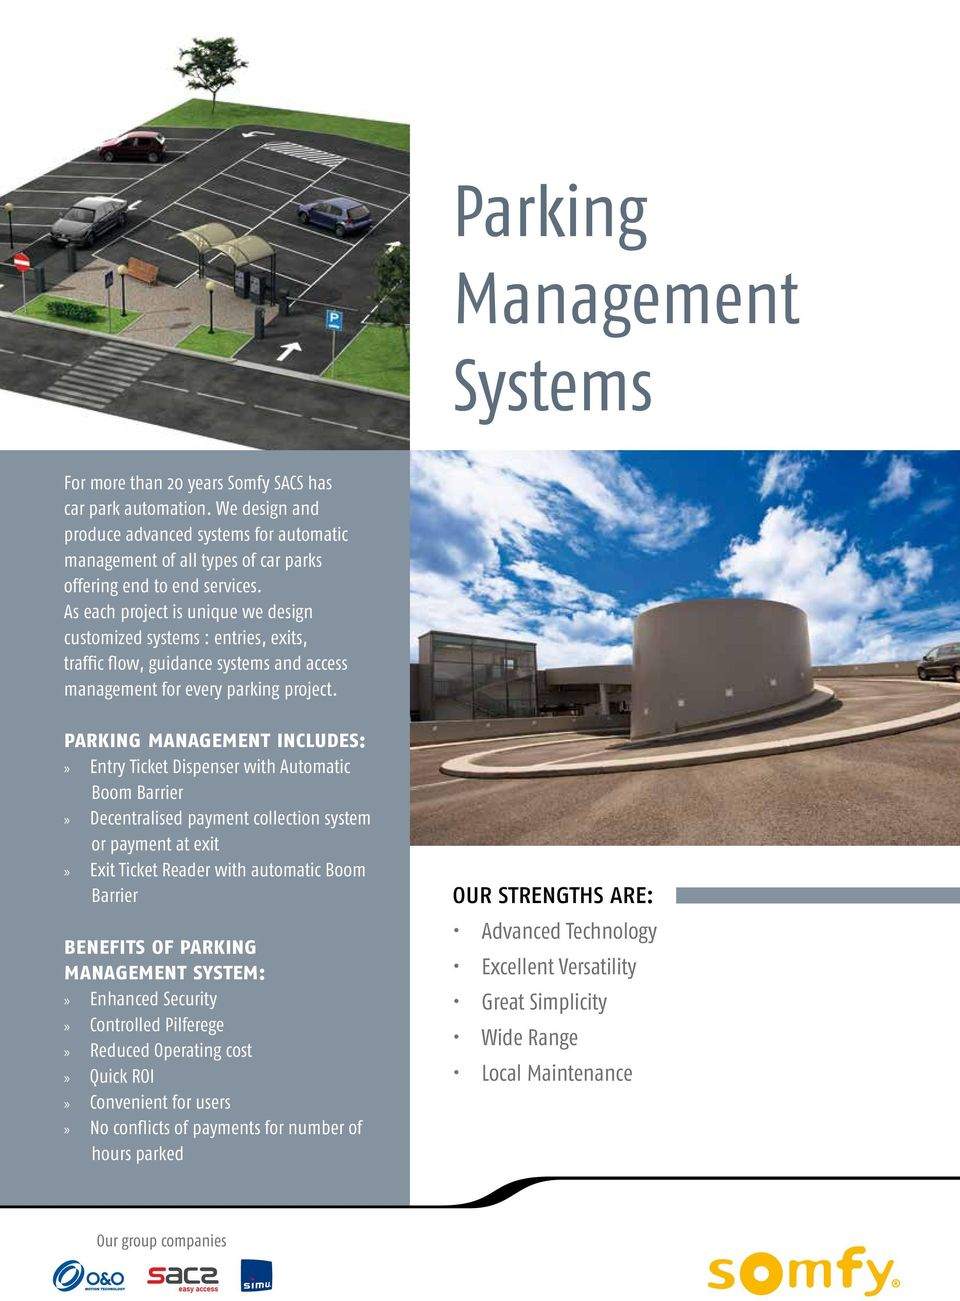 As each project is unique we design customized systems : entries, exits, traffic flow, guidance systems and access management for every parking project.